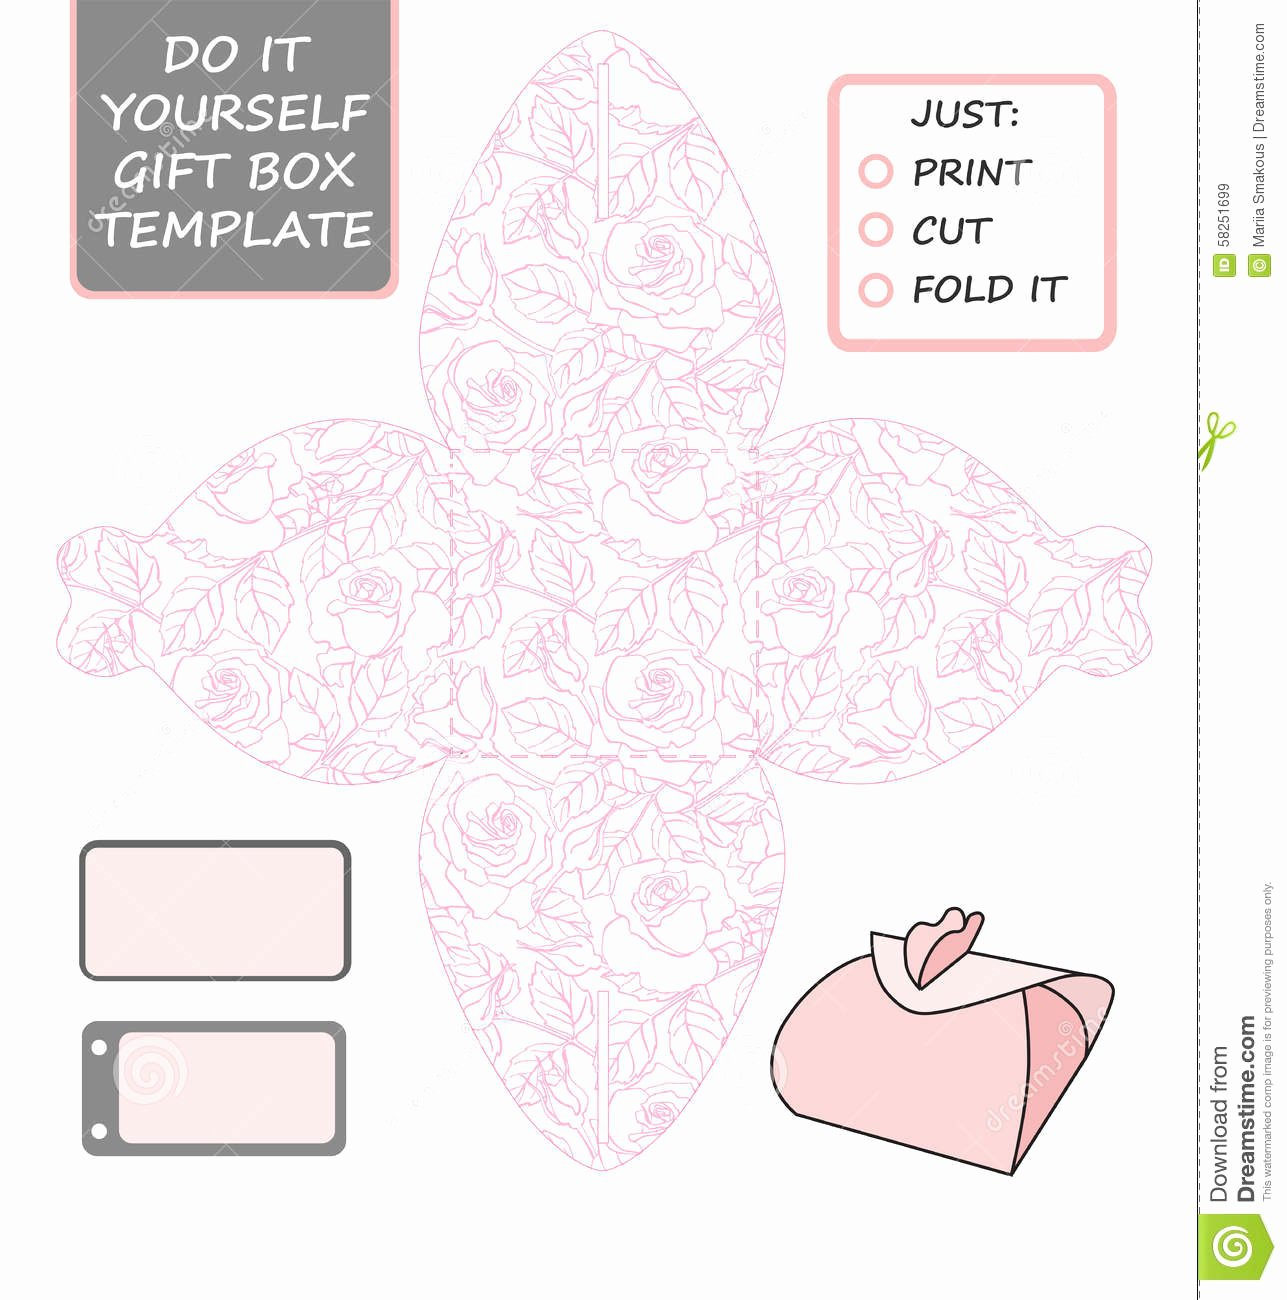 Die Cut Box Template Lovely Favor Gift Box Die Cut Box Template with Rose Pattern